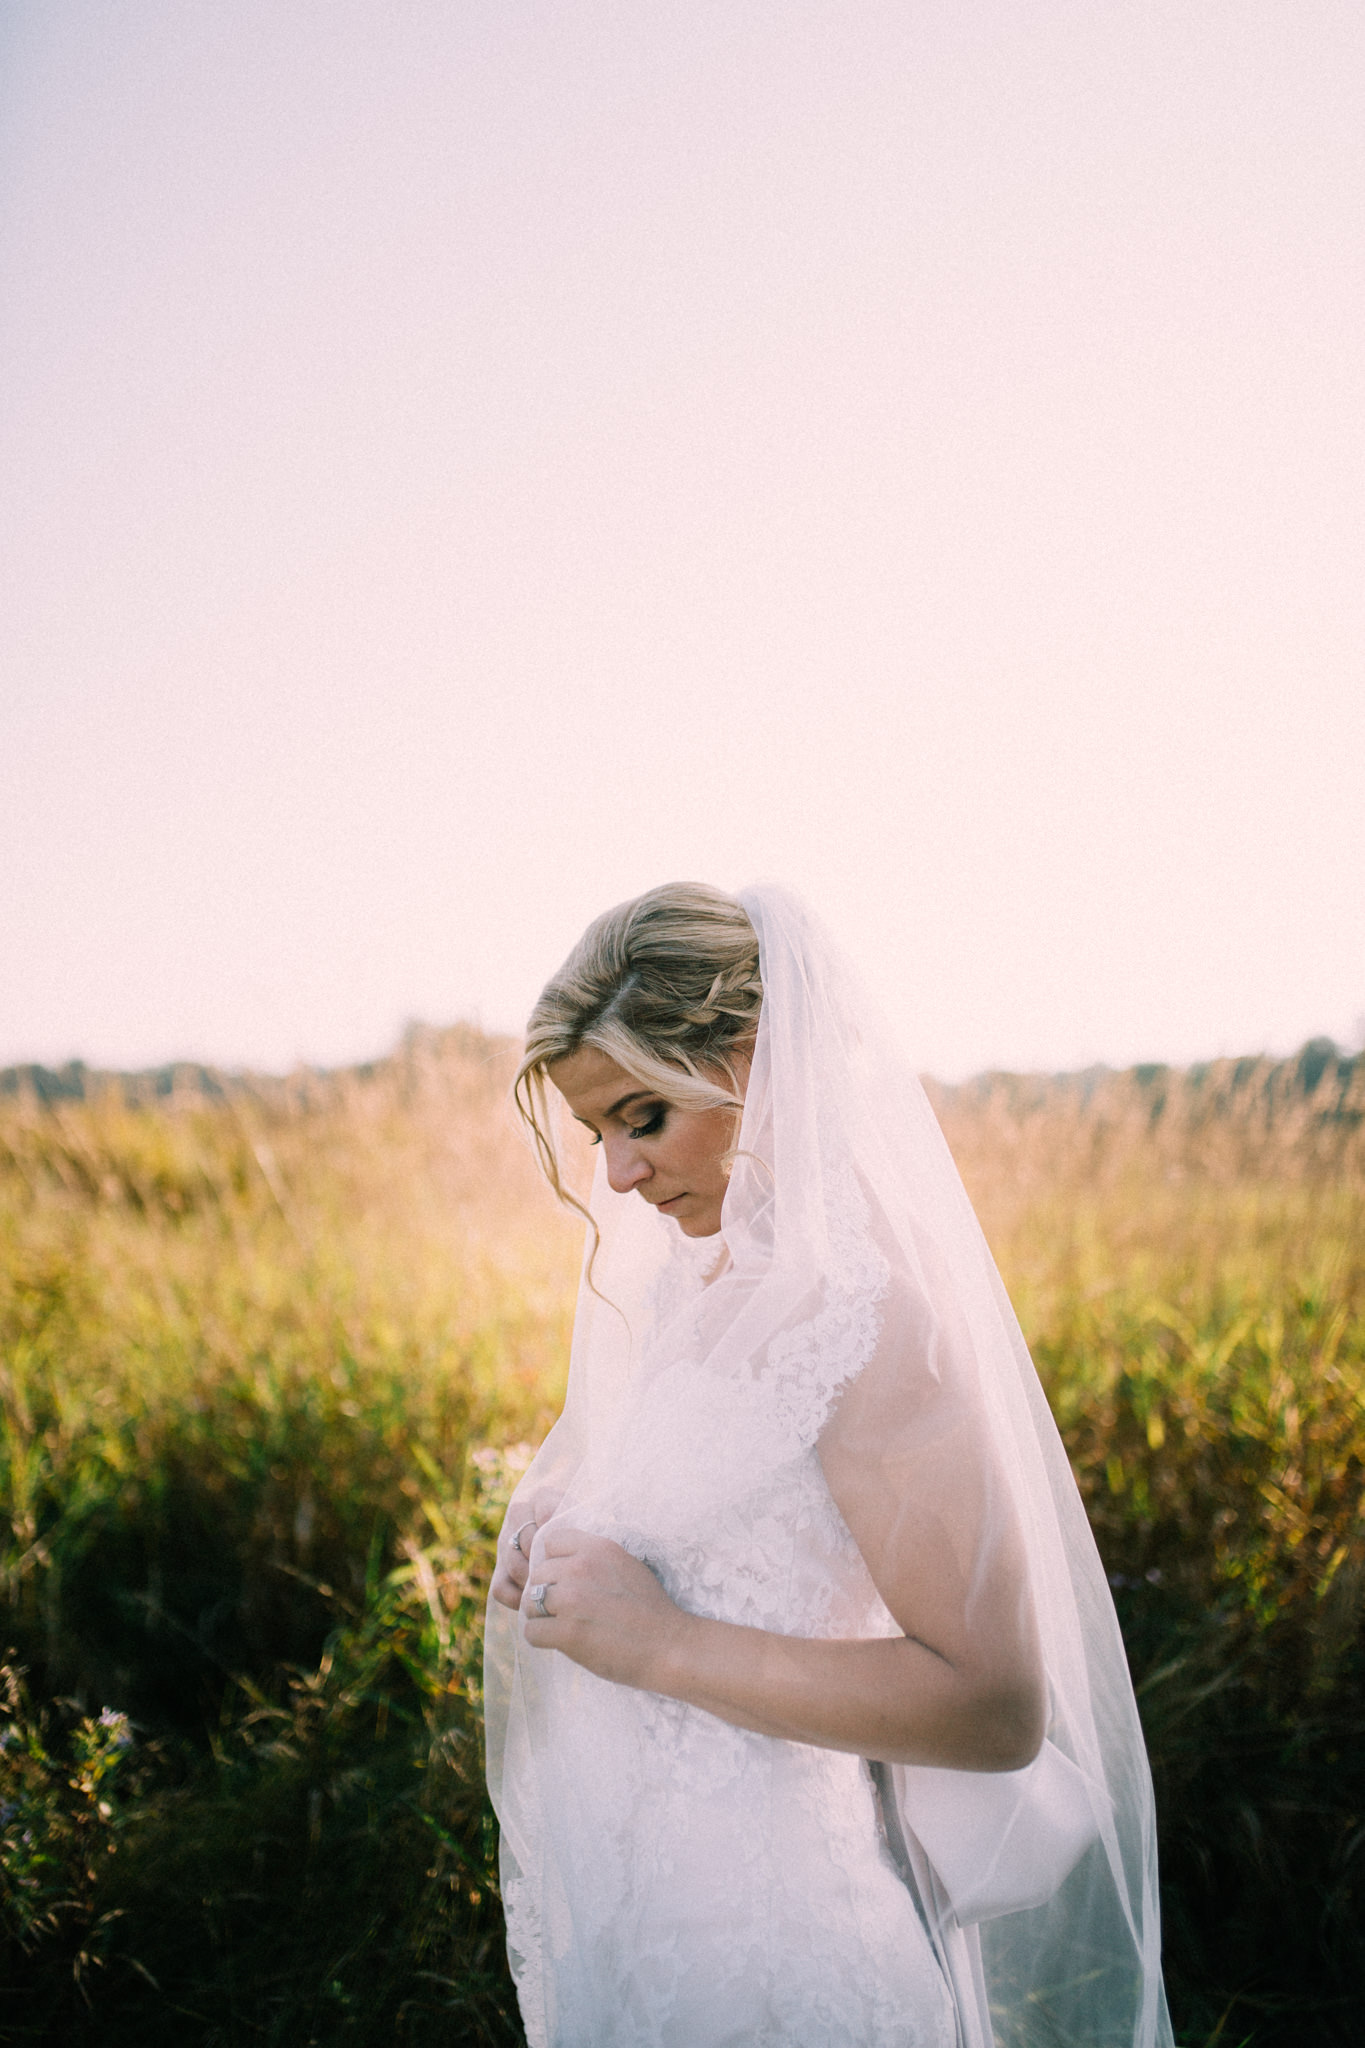 bride portrait in a field during sunset